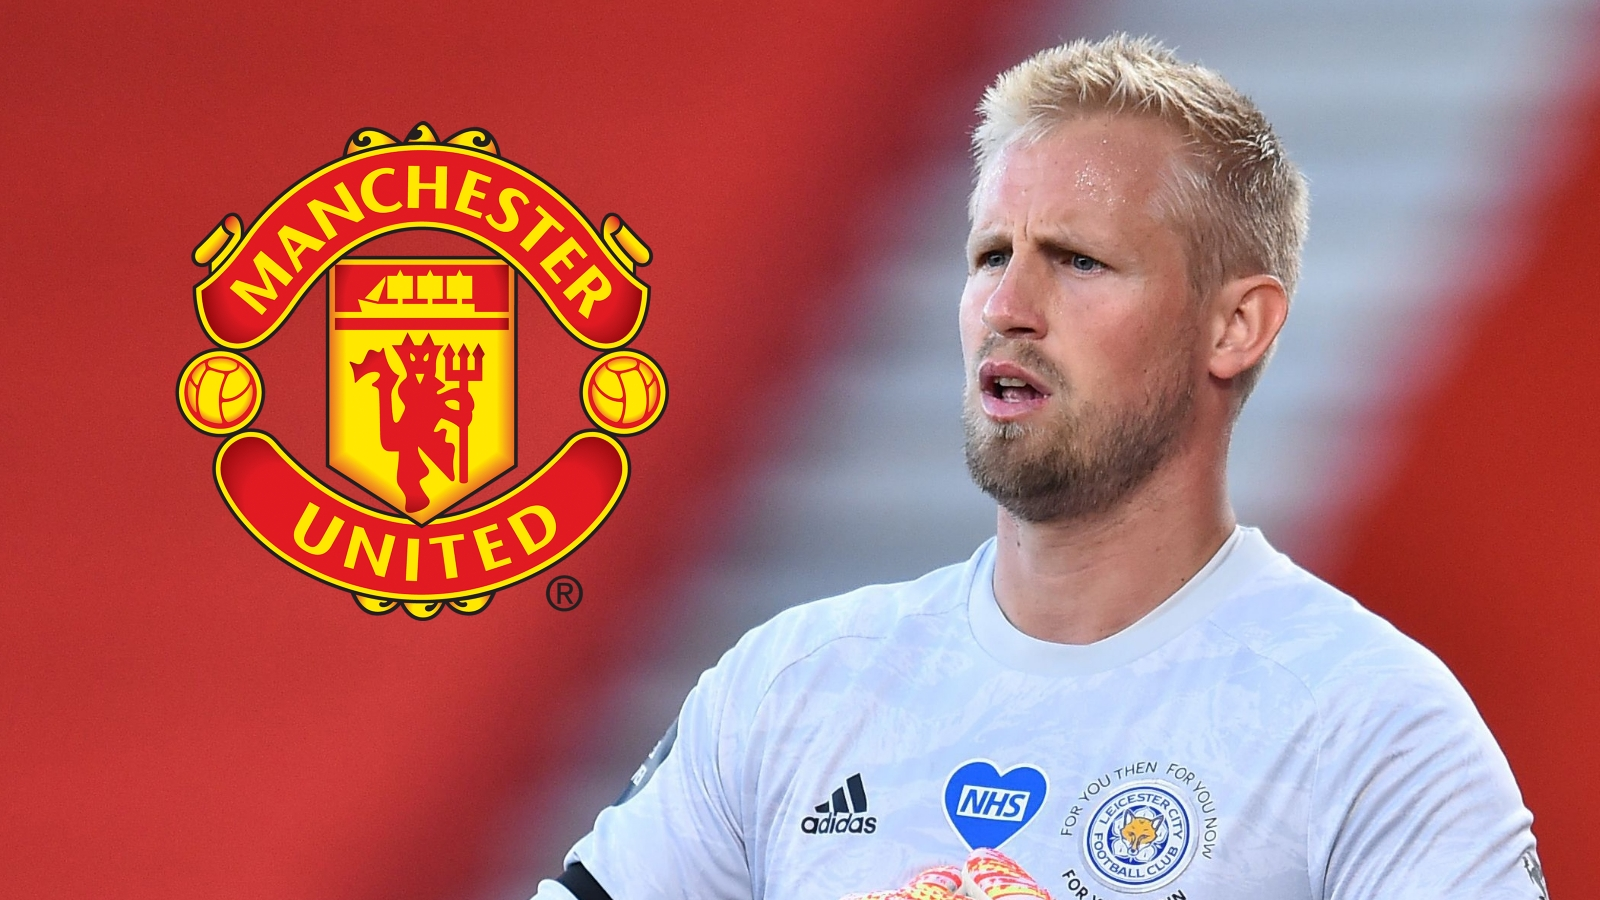 'Schmeichel's dream is to join Man Utd' - Leicester keeper 'will do anything to get to' Old Trafford, says ex-team-mate